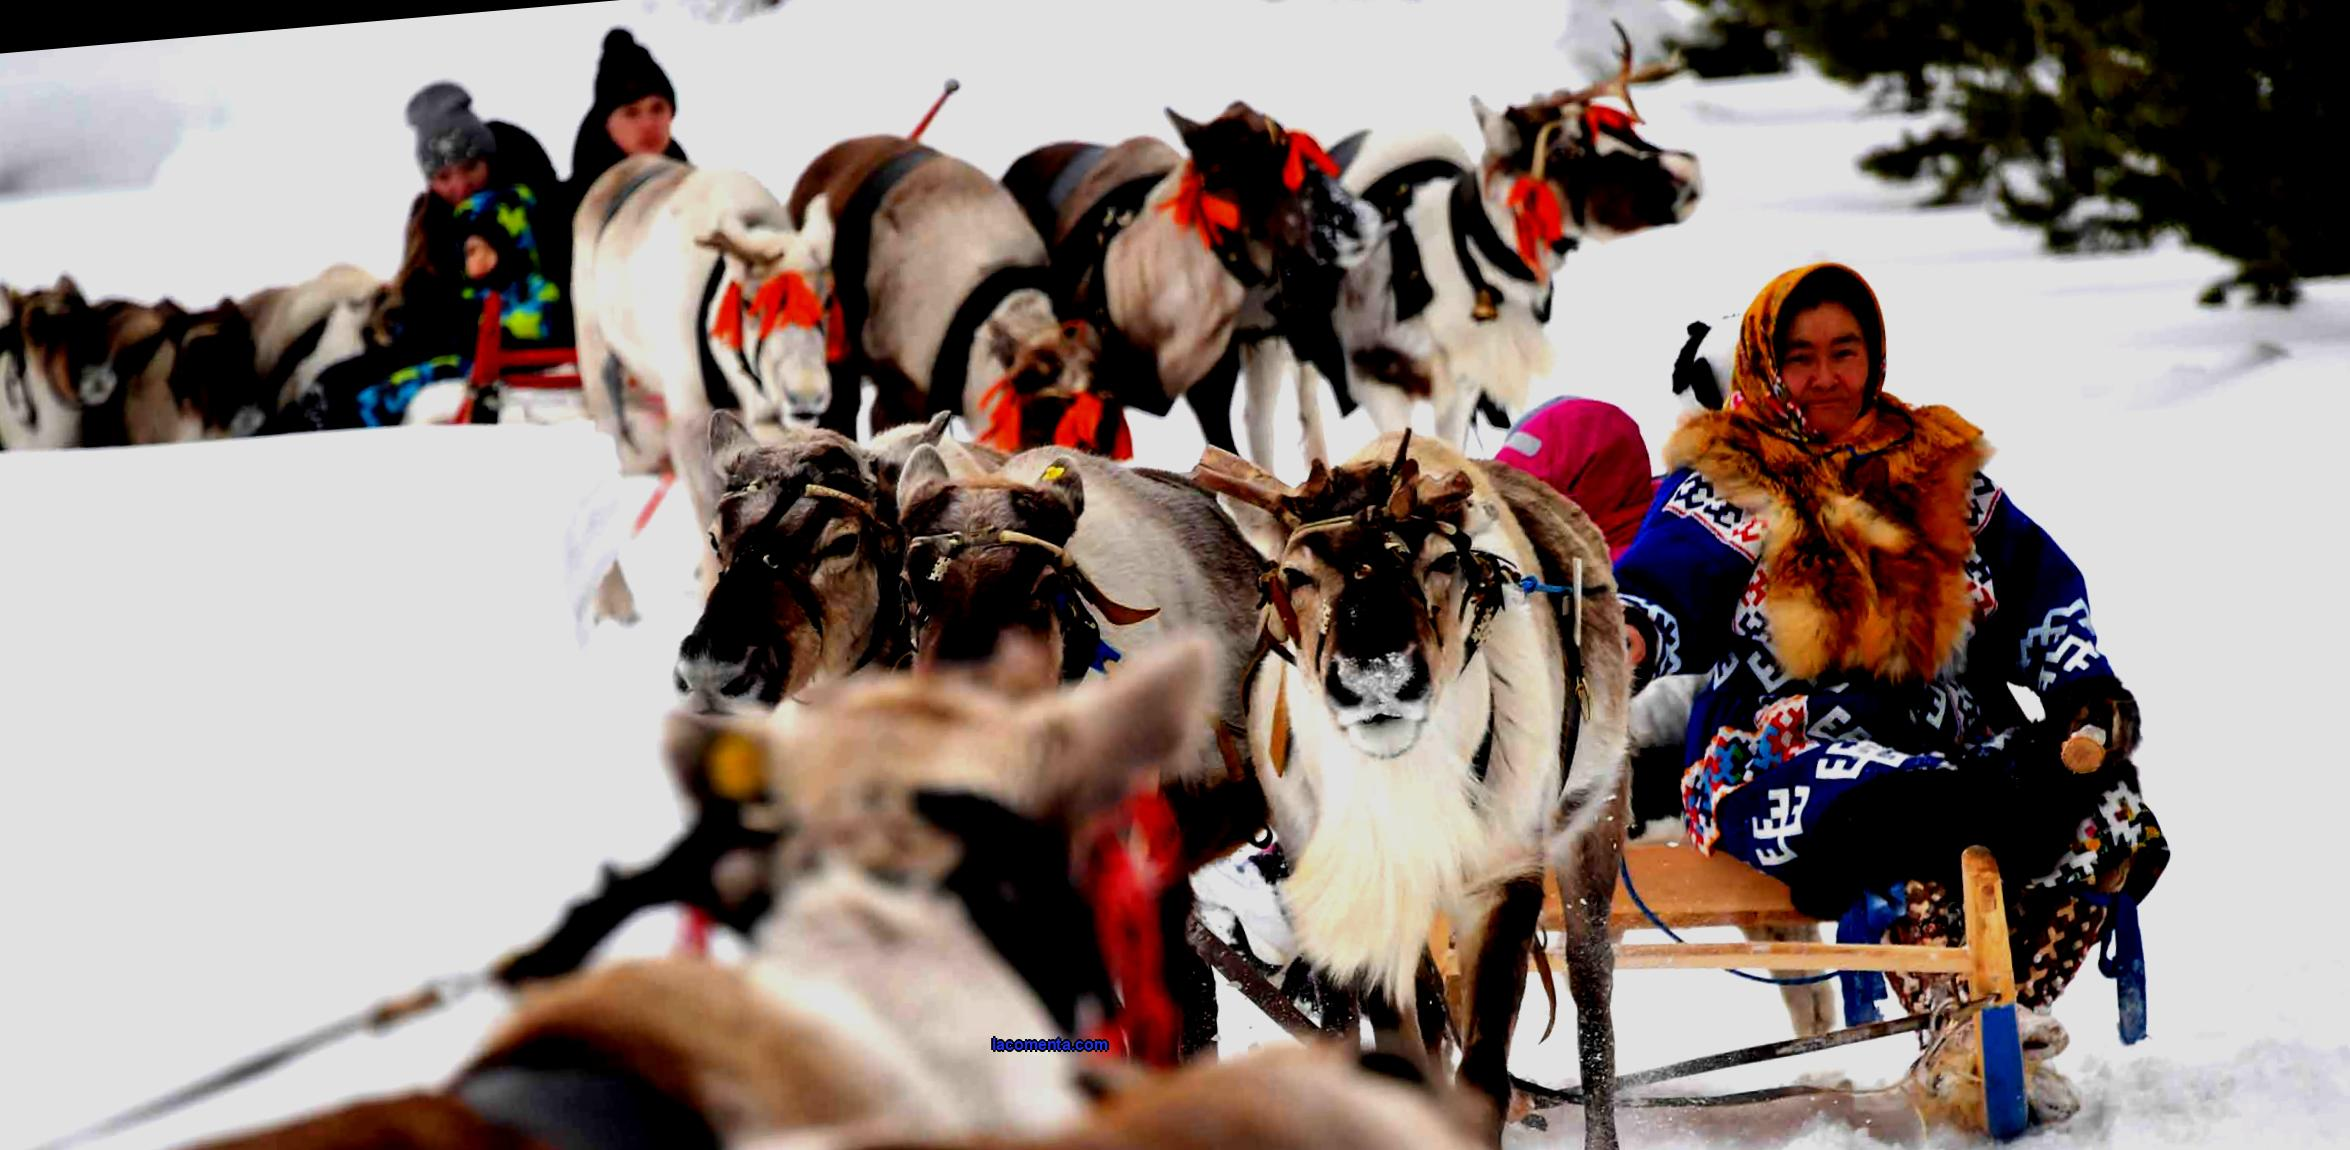 Rest in Khanty-Mansiysk: Trips to the indigenous northerners and the fabulous New Year